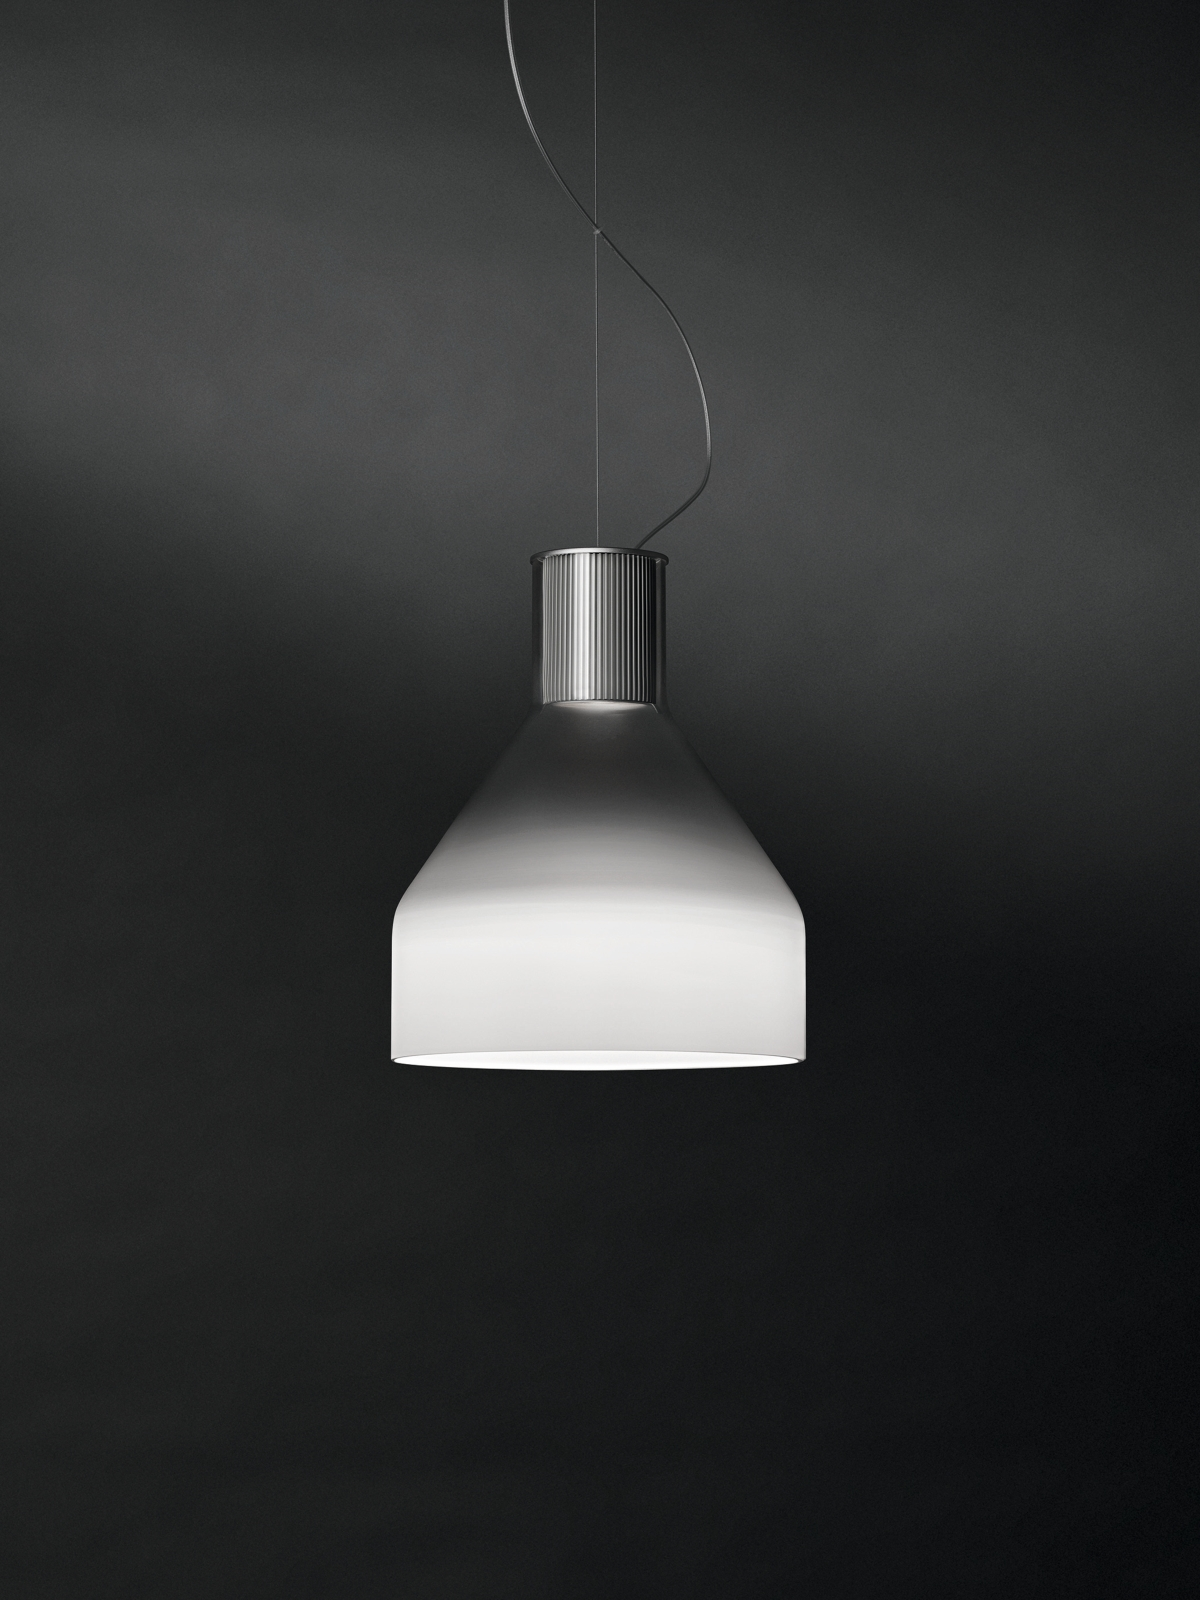 CAIIGO Suspension lamp still